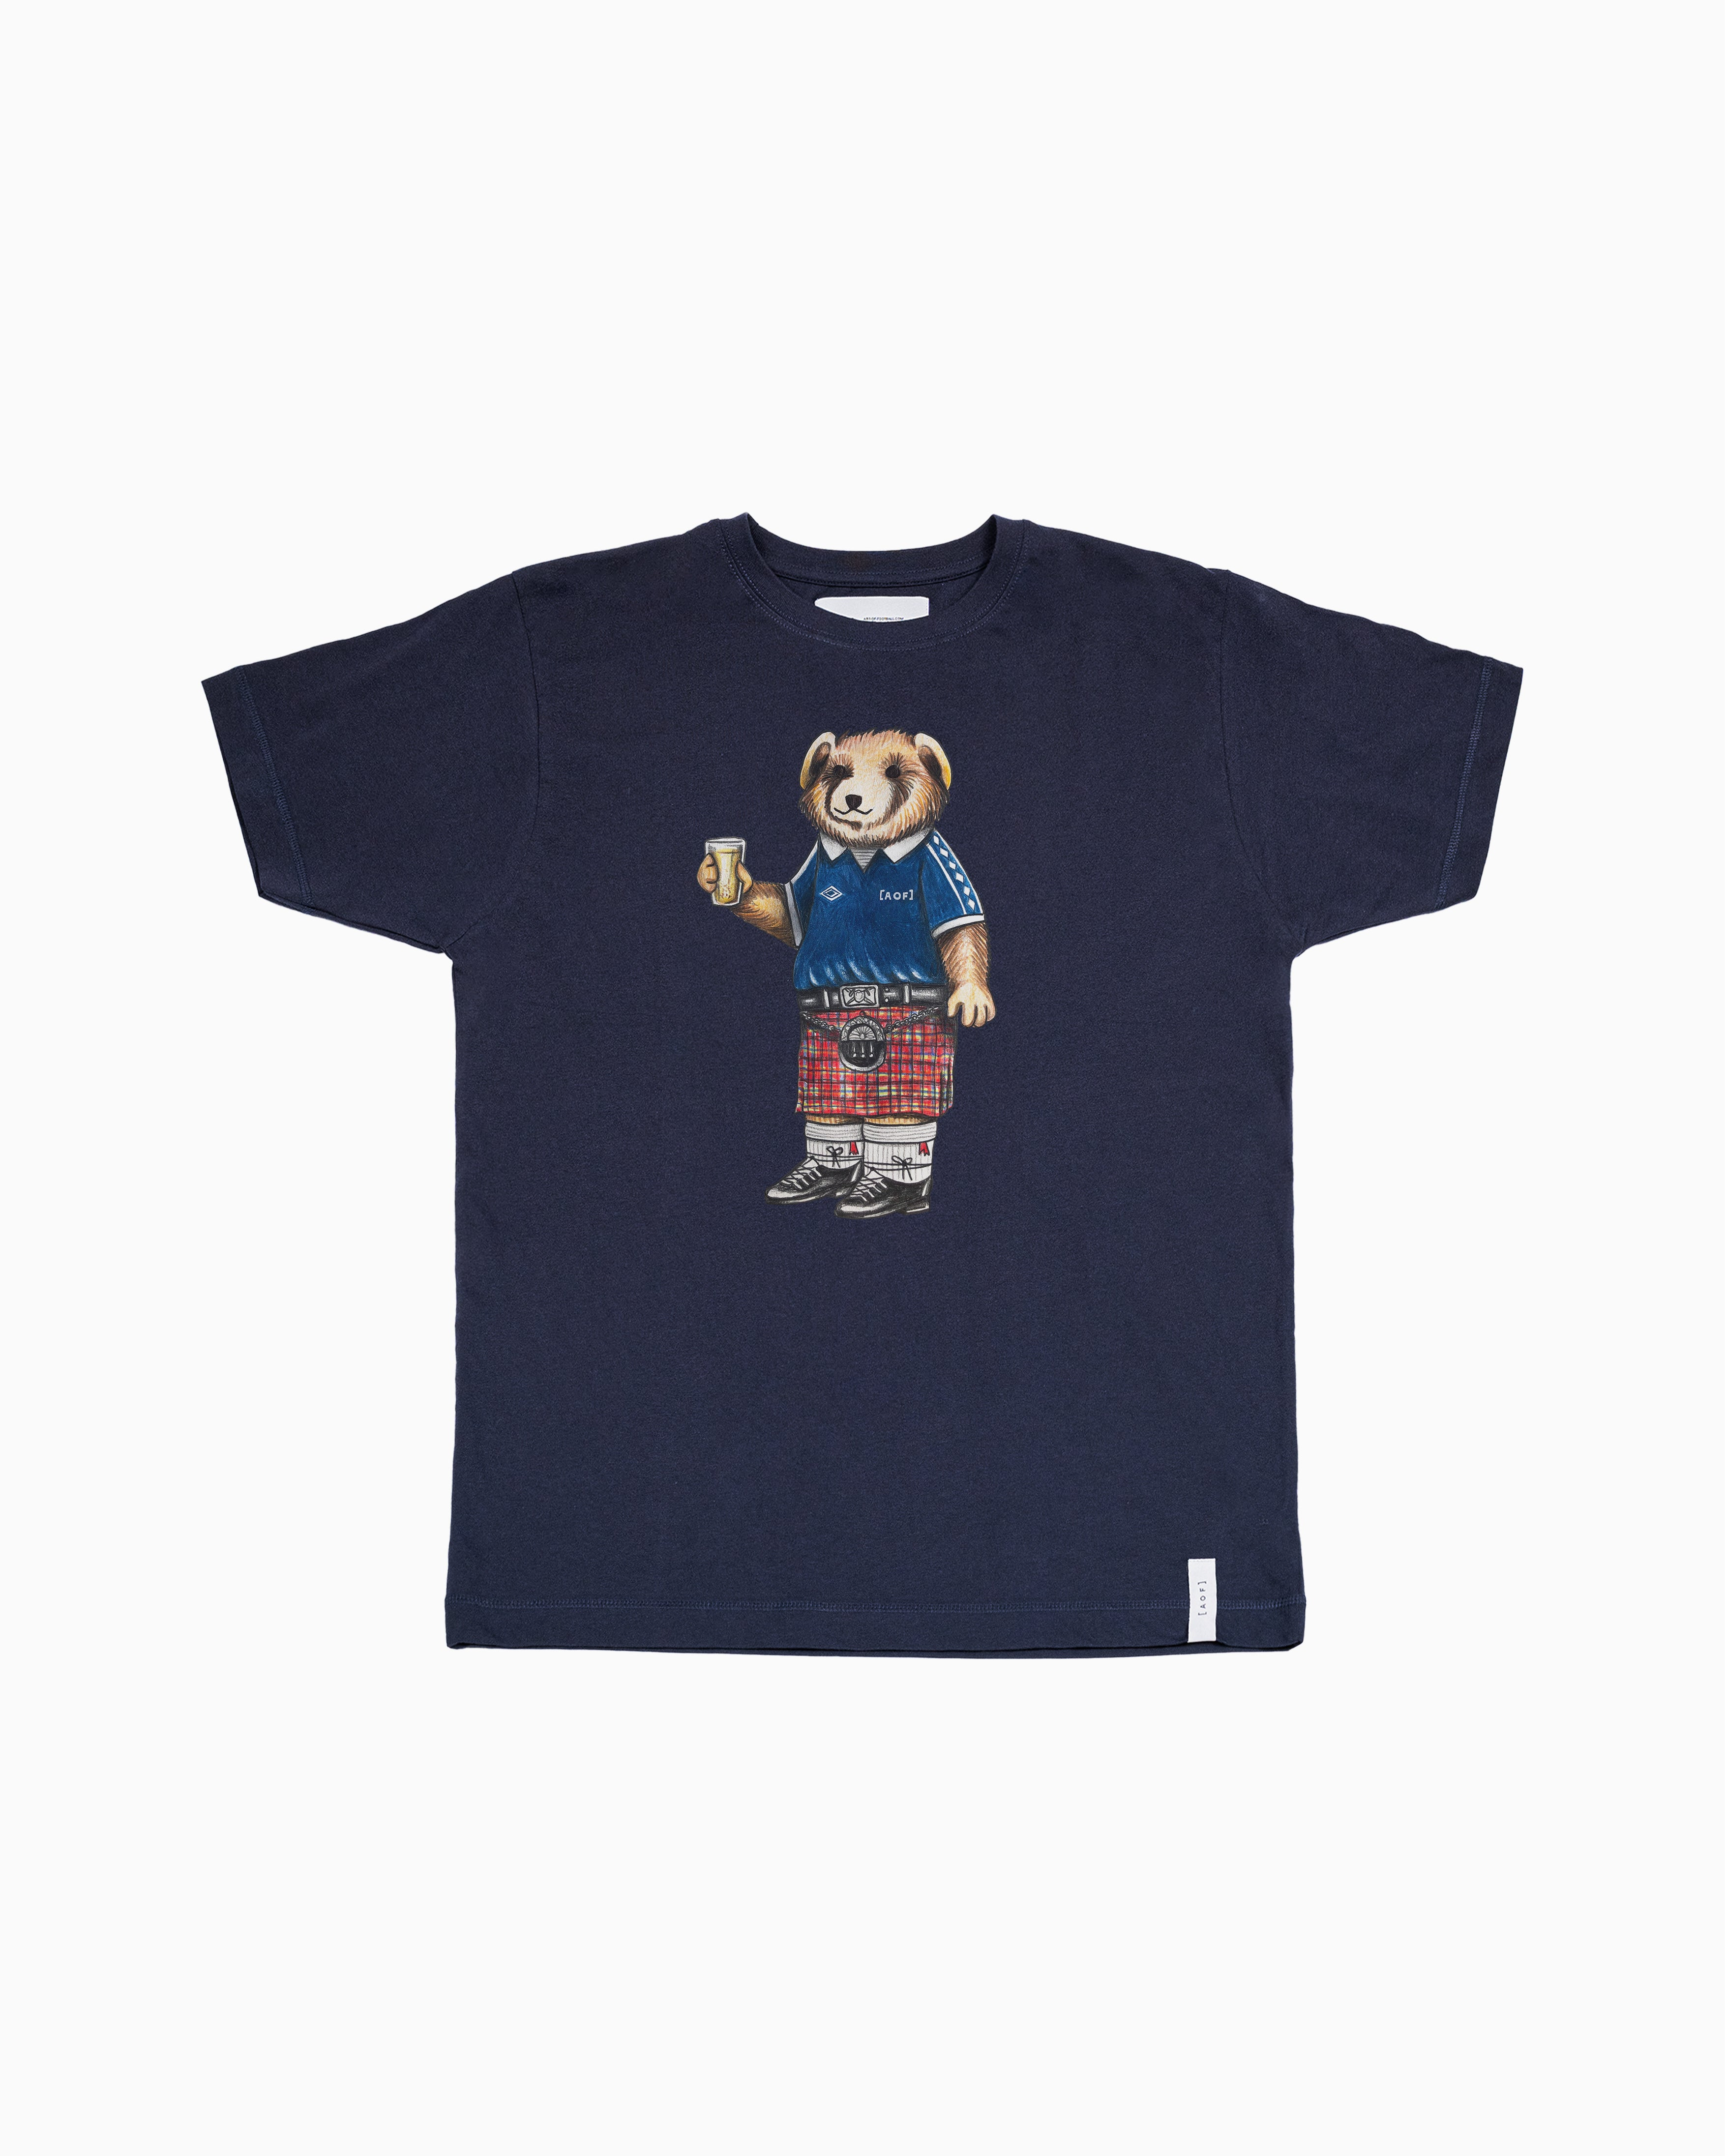 McPickles - Scotland Tee or Sweat